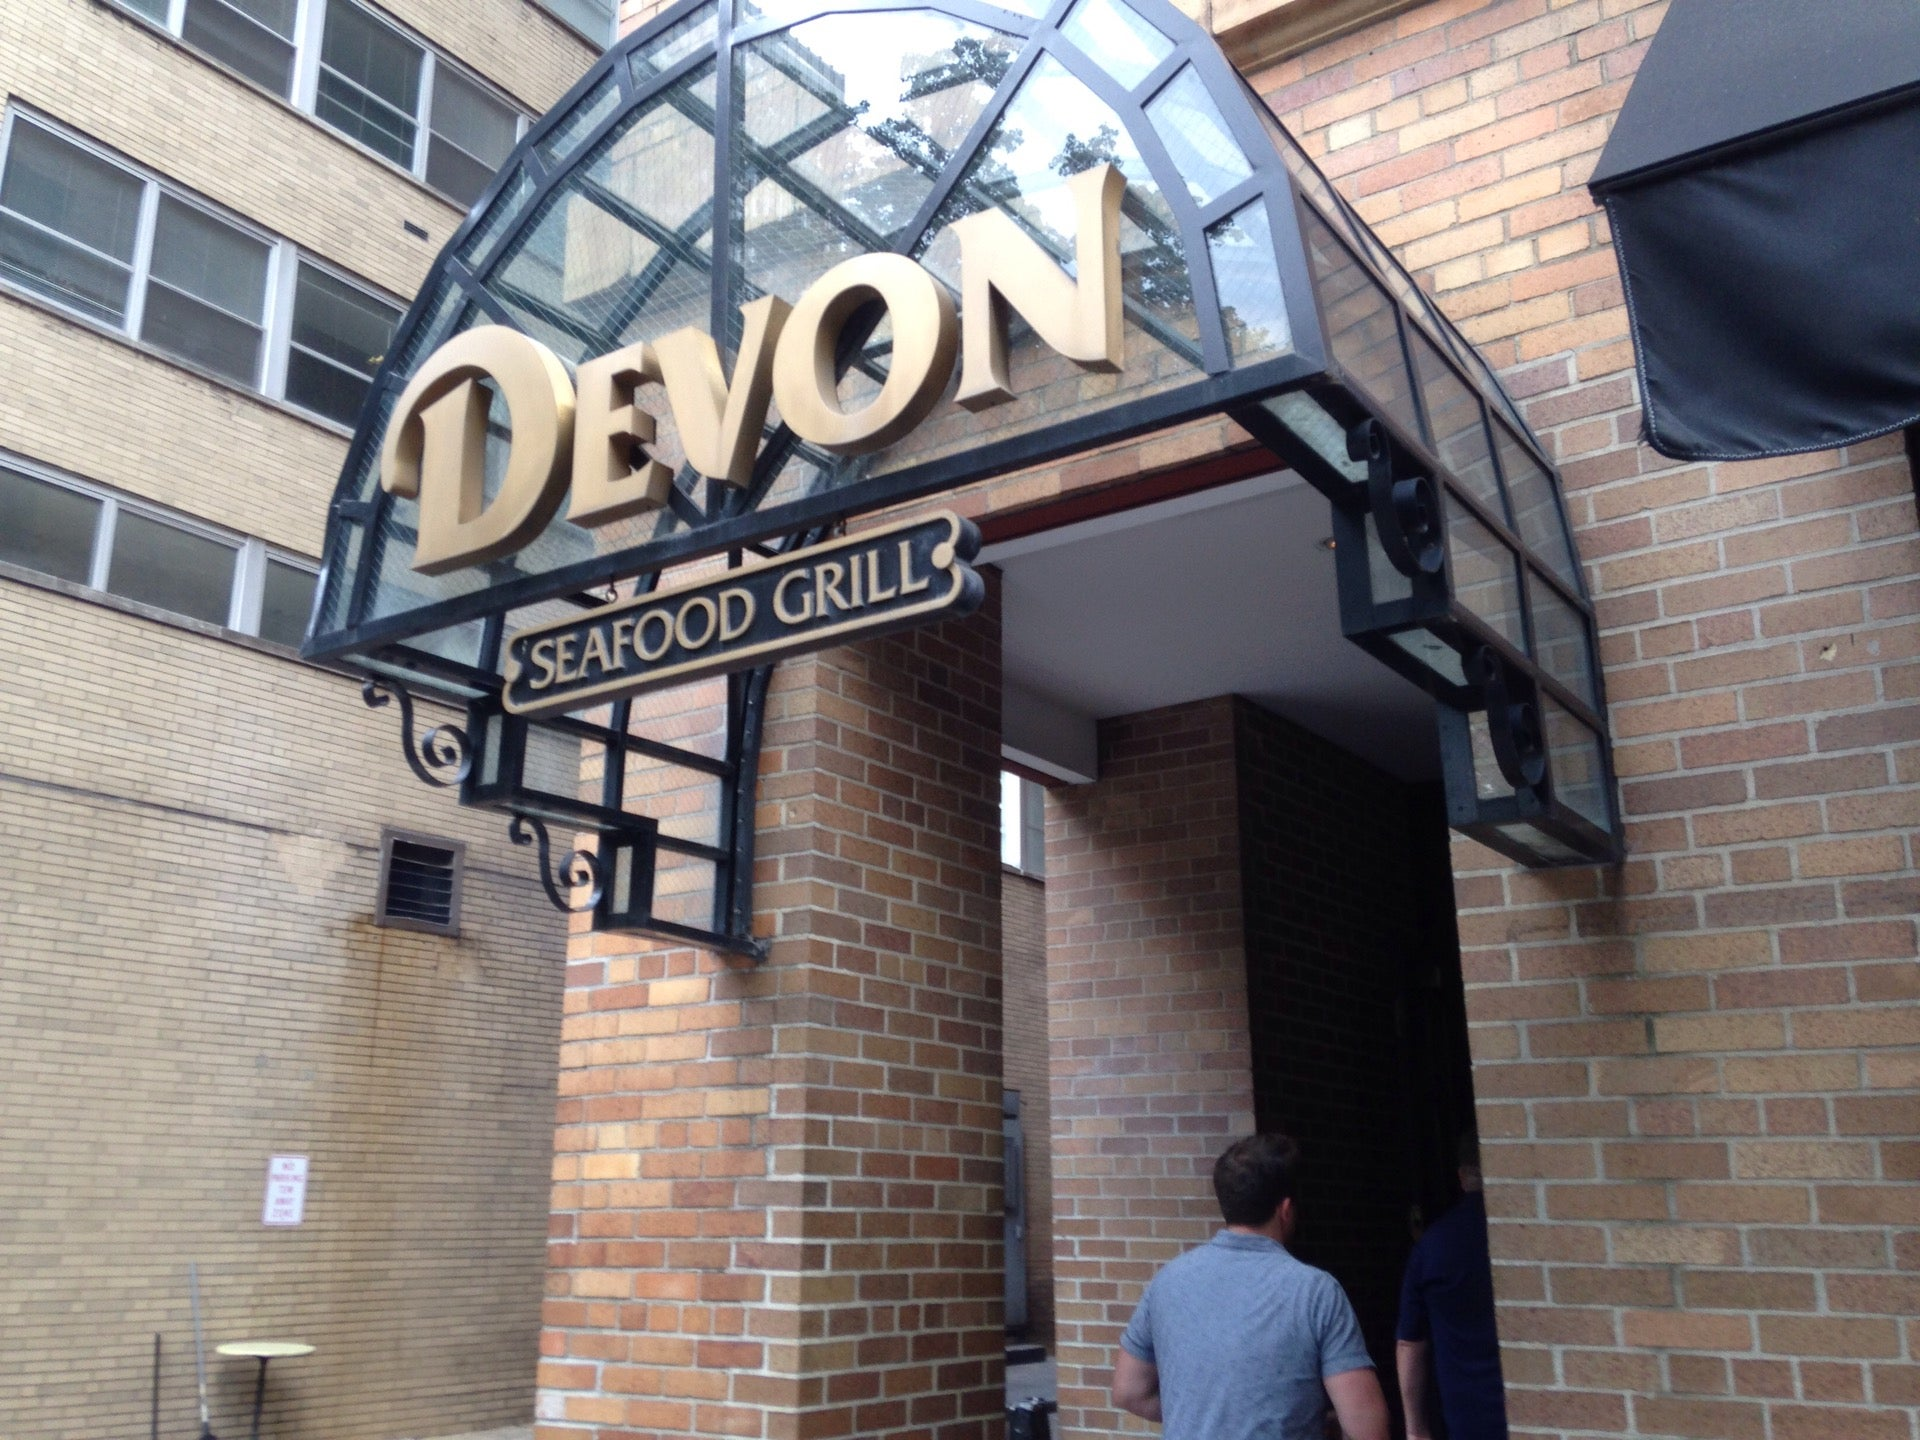 Devon Seafood Grill,oysters,seafood,zagat-rated